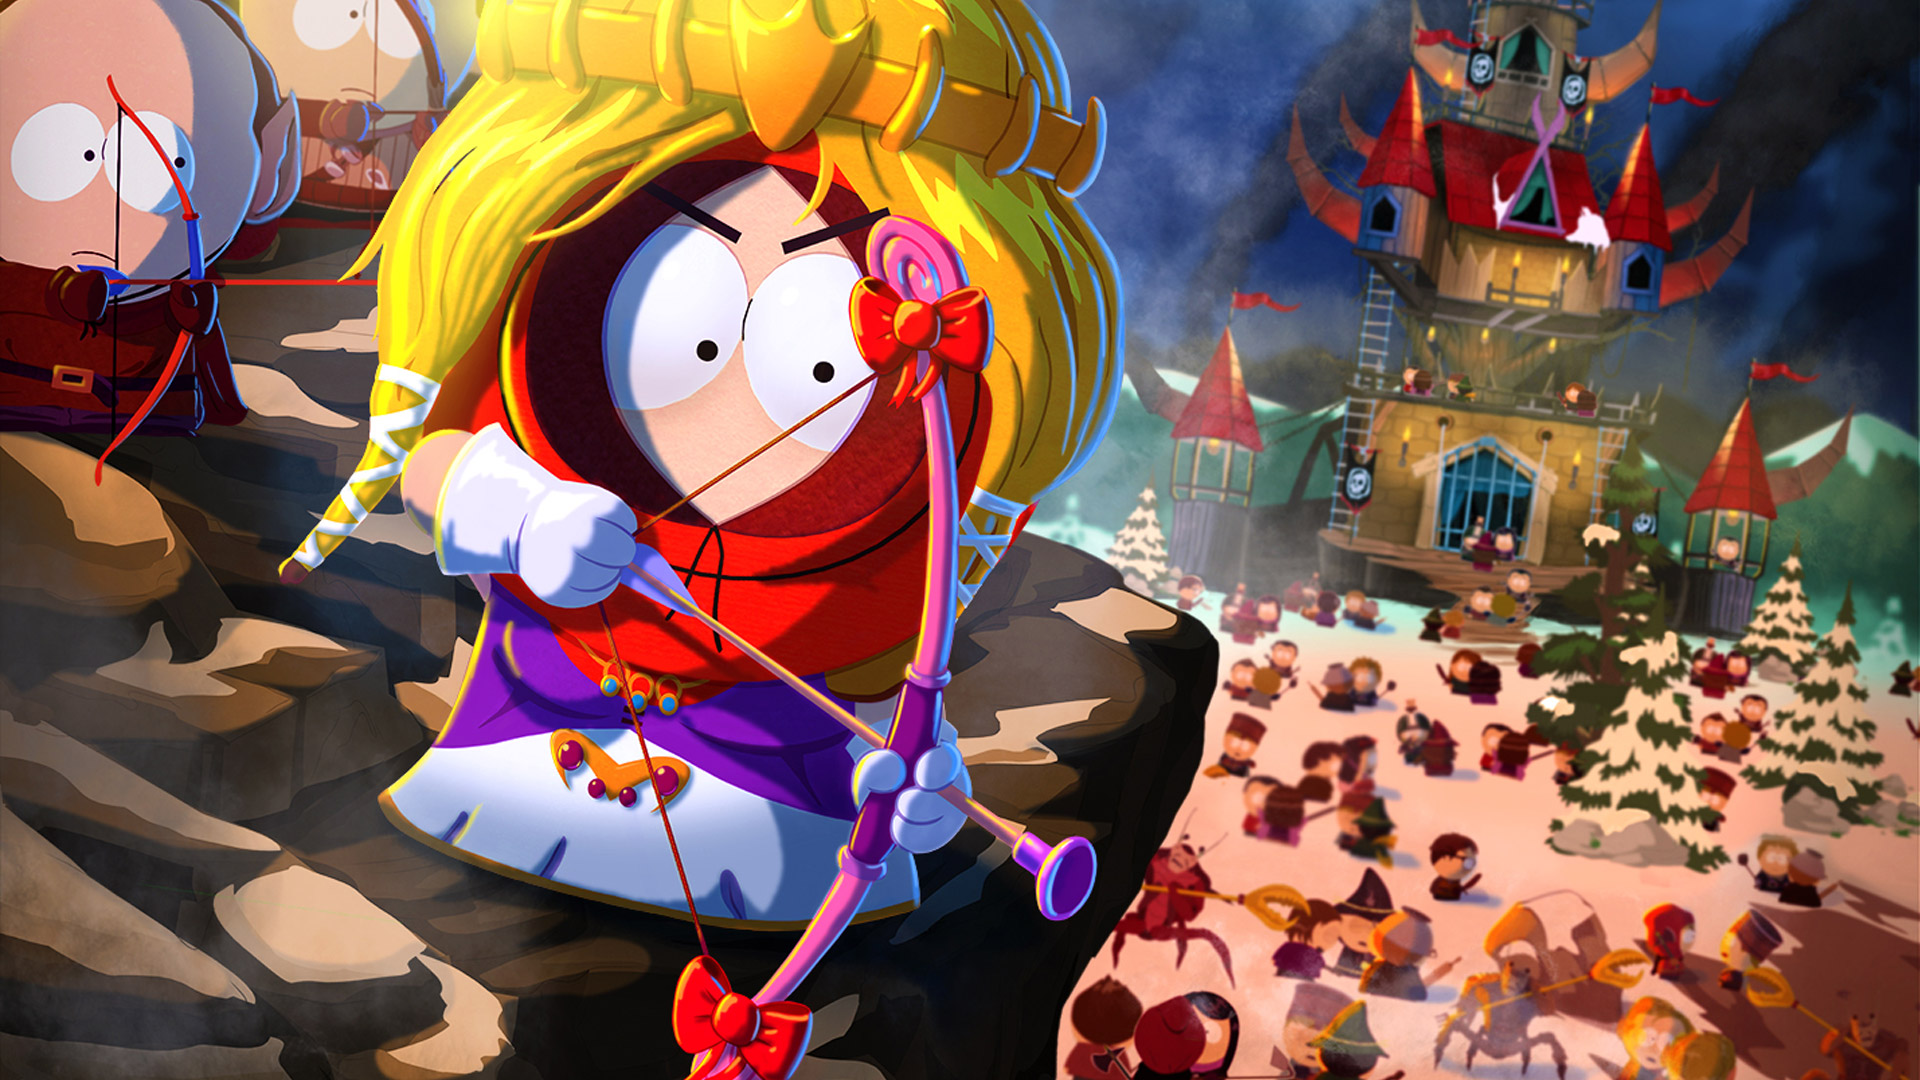 south park: the stick de truth the super samurai spaceman dlc